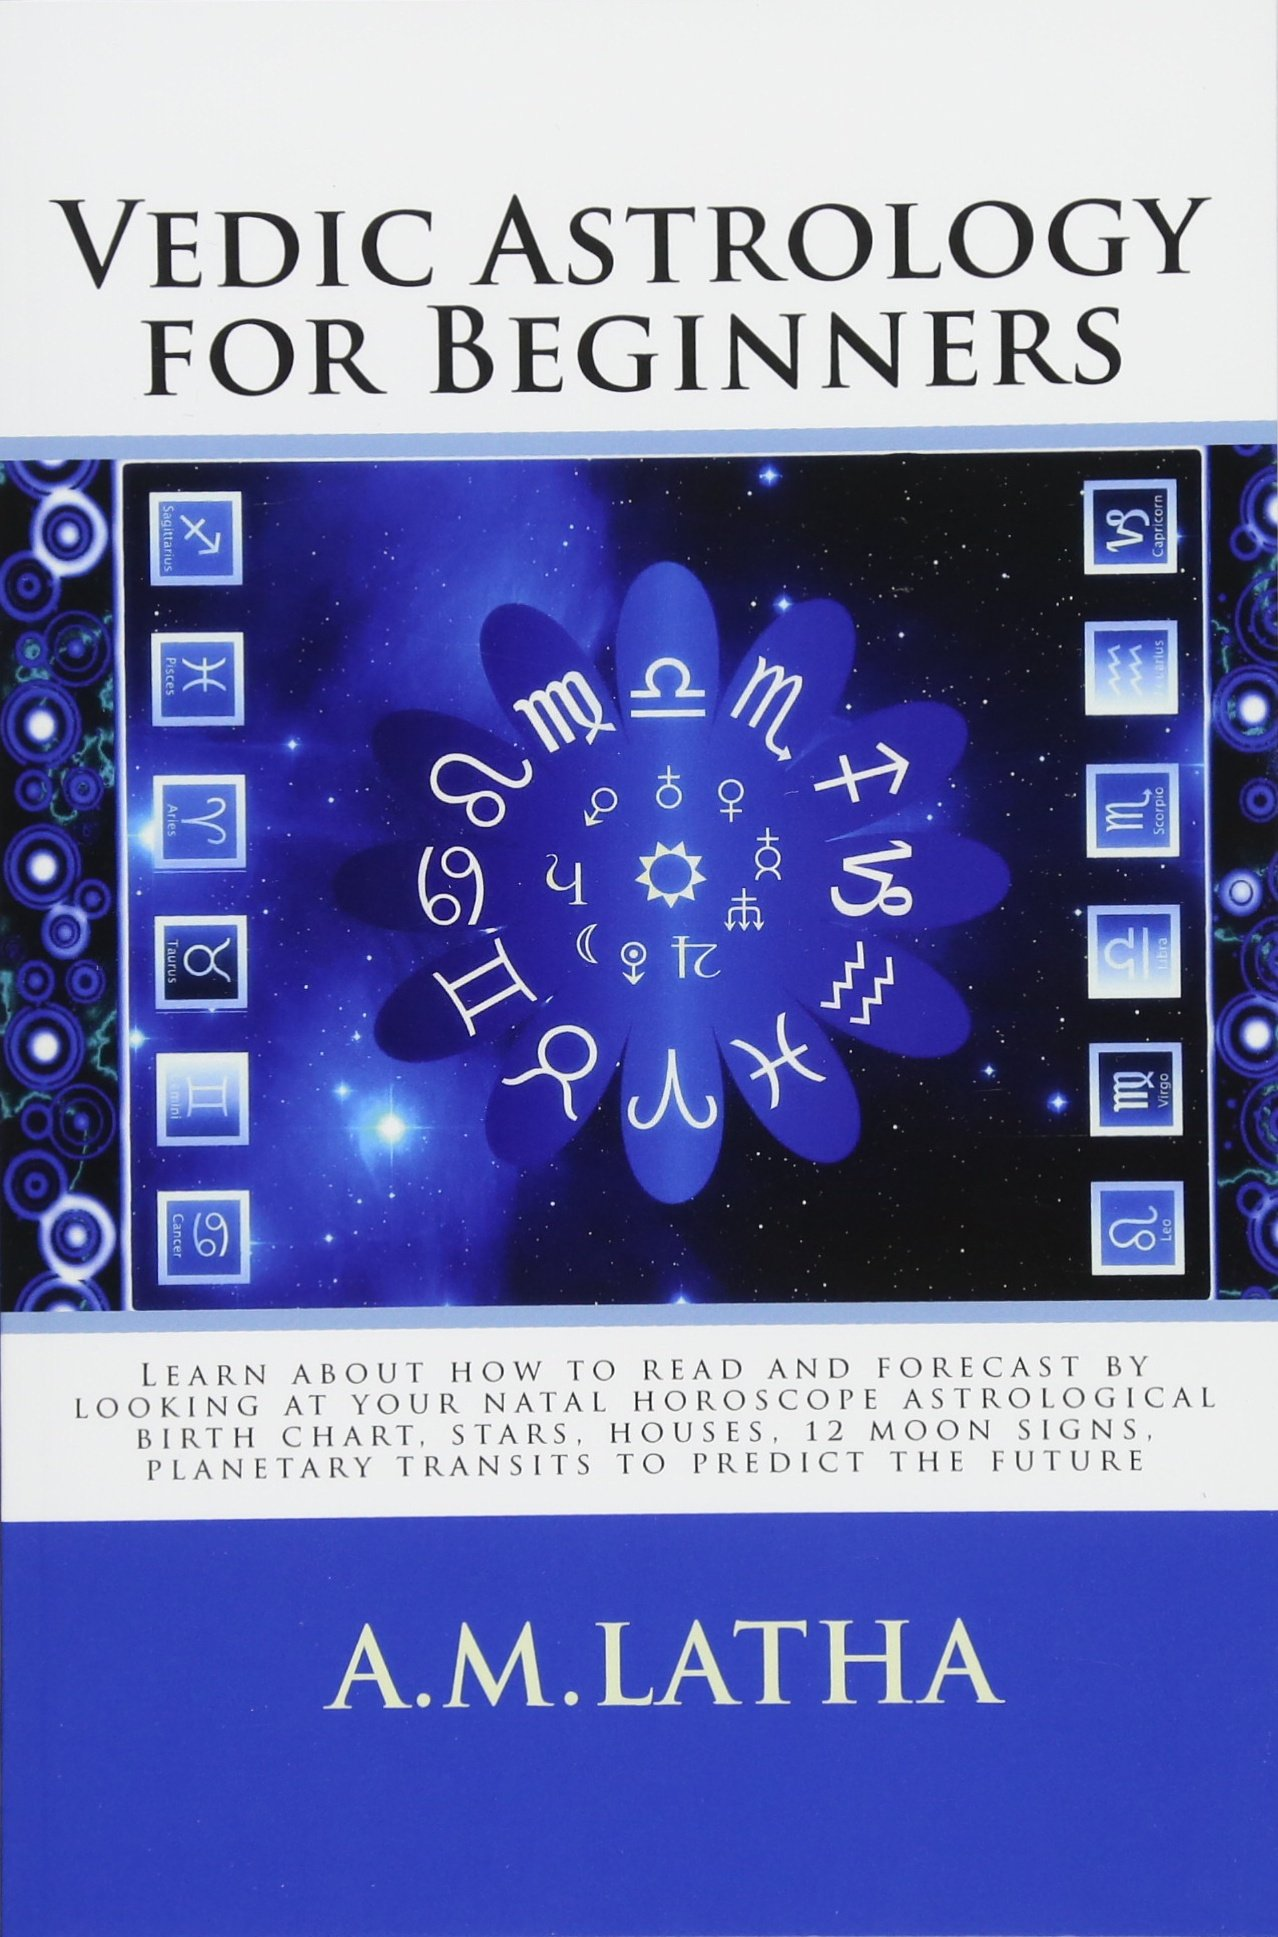 Vedic Astrology For Beginners MLatha A 9781541258778 Amazon